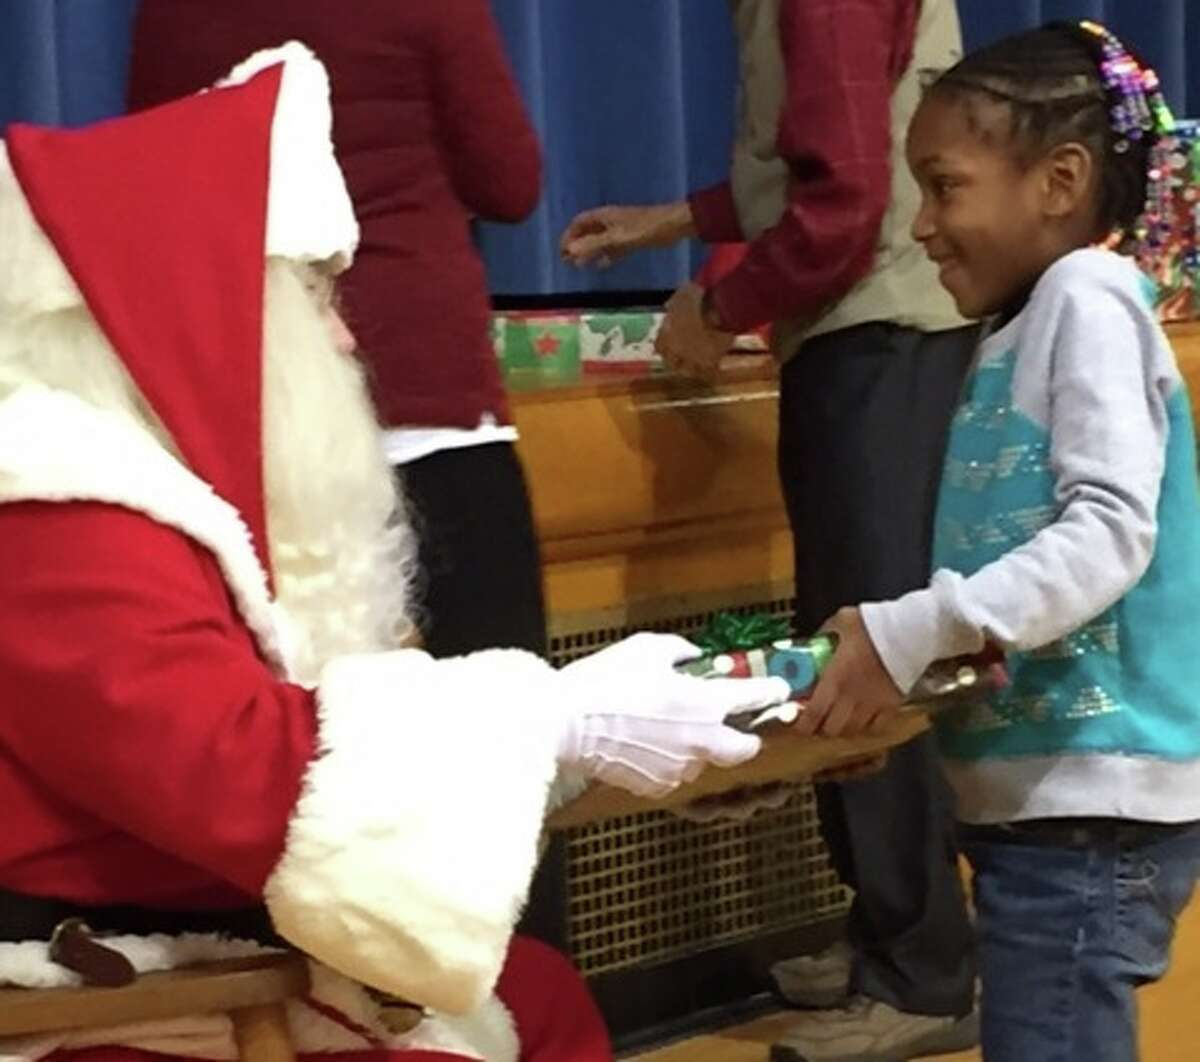 Santa offers a present to Eastlawn Elementary first-grader Oveeanna Montgomery.